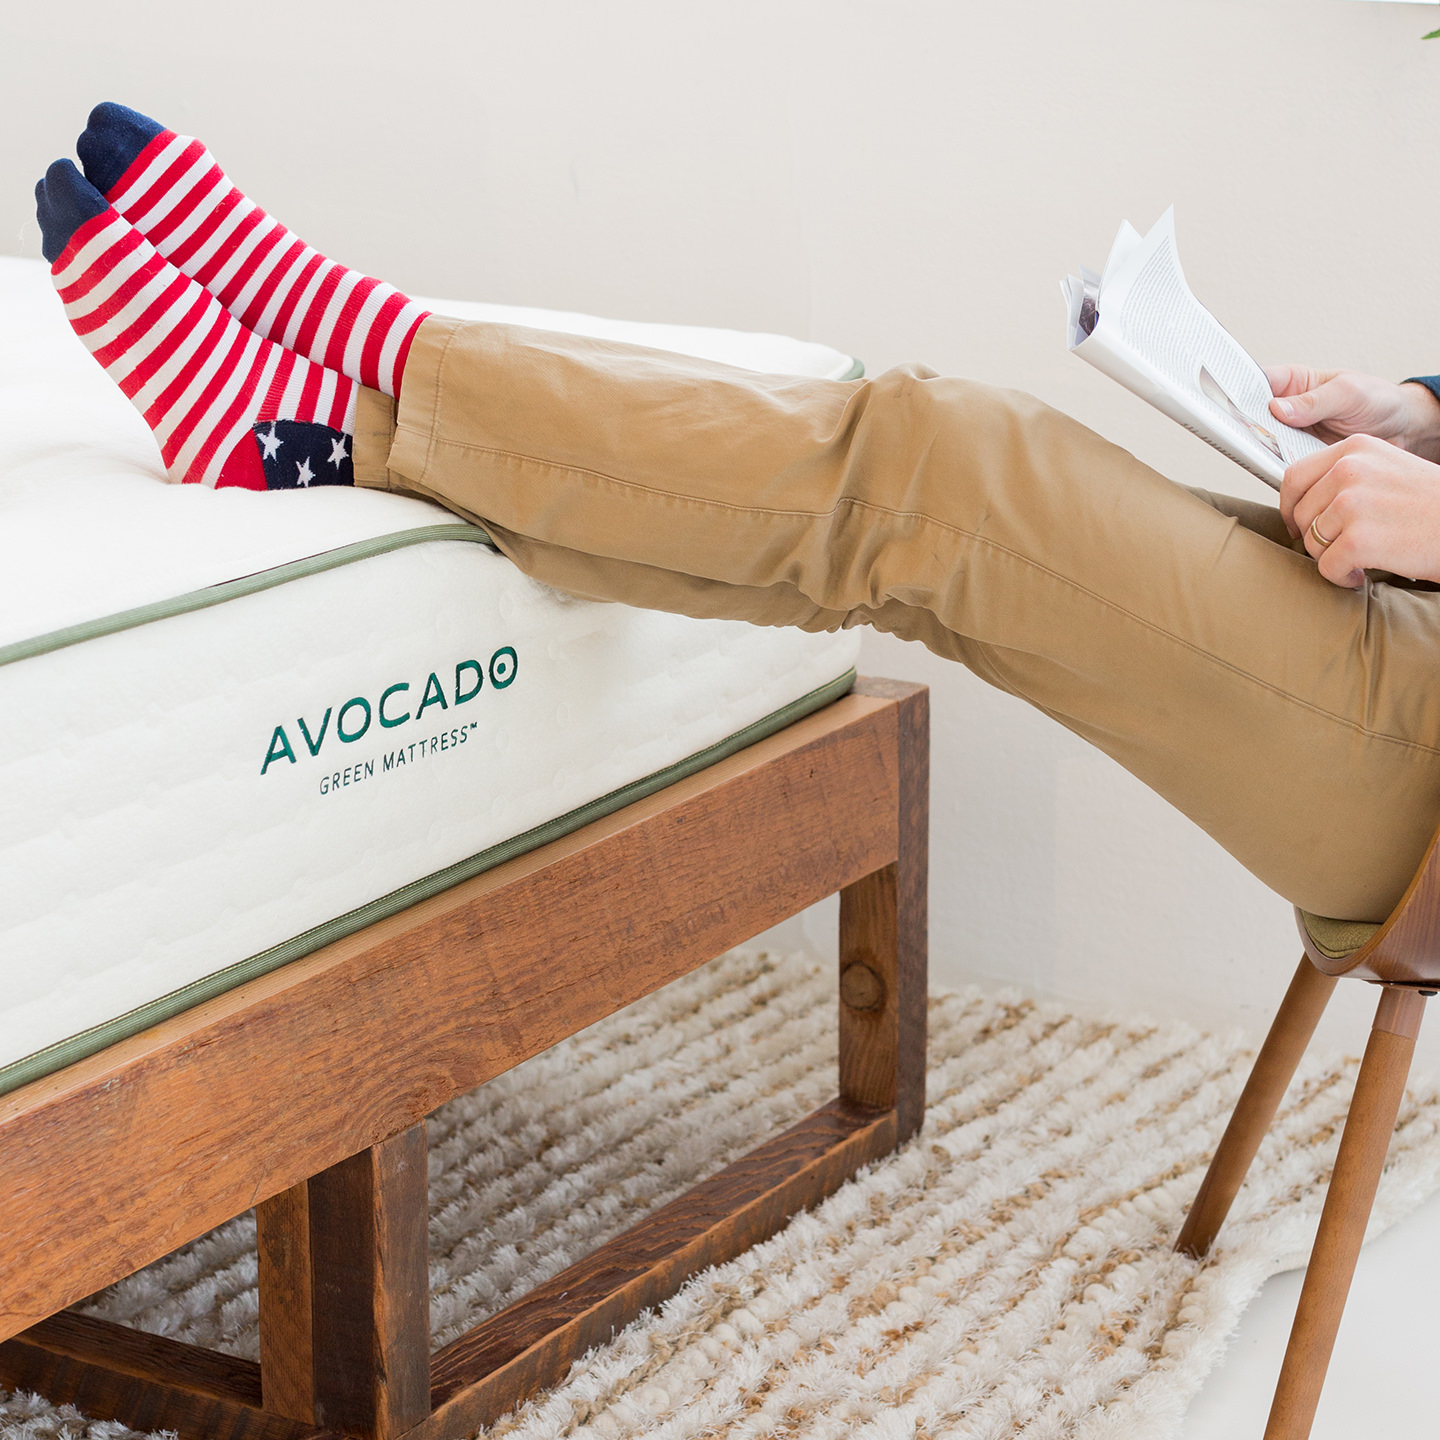 Memorial Day Sale Organic Hybrid Avocado Green Mattress